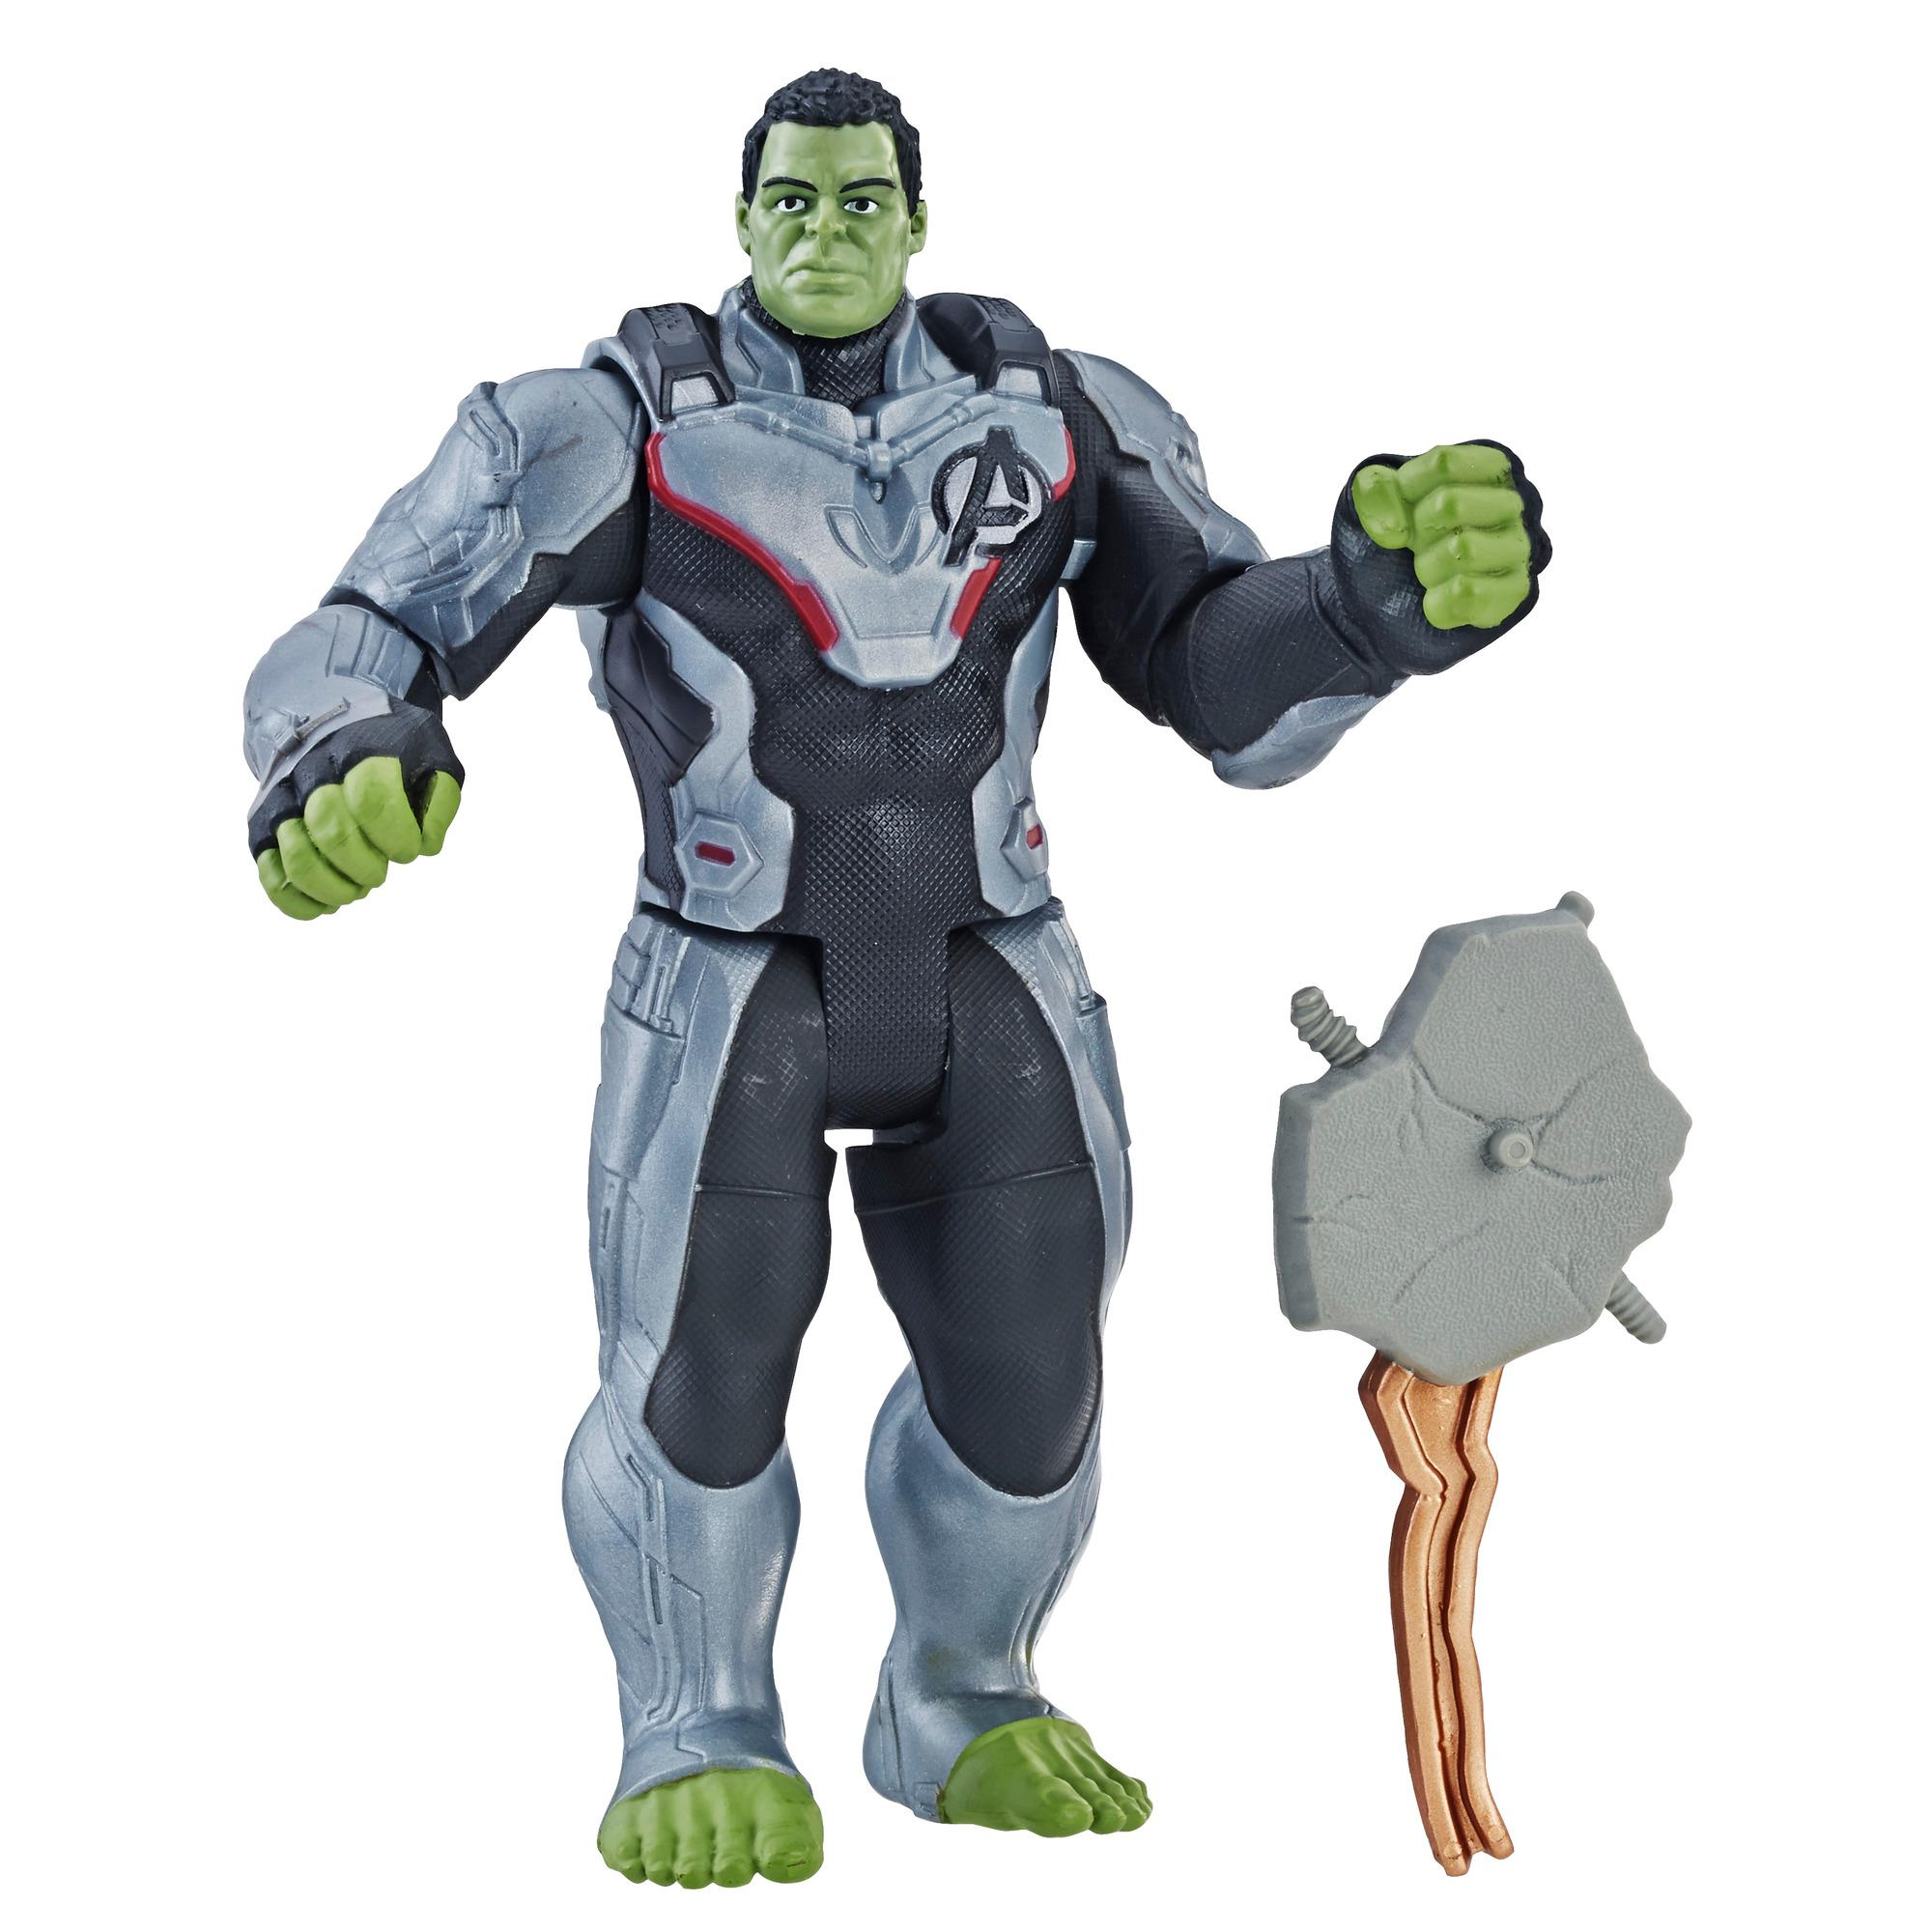 Marvel Avengers: Endgame Team Suit Hulk Deluxe Figure